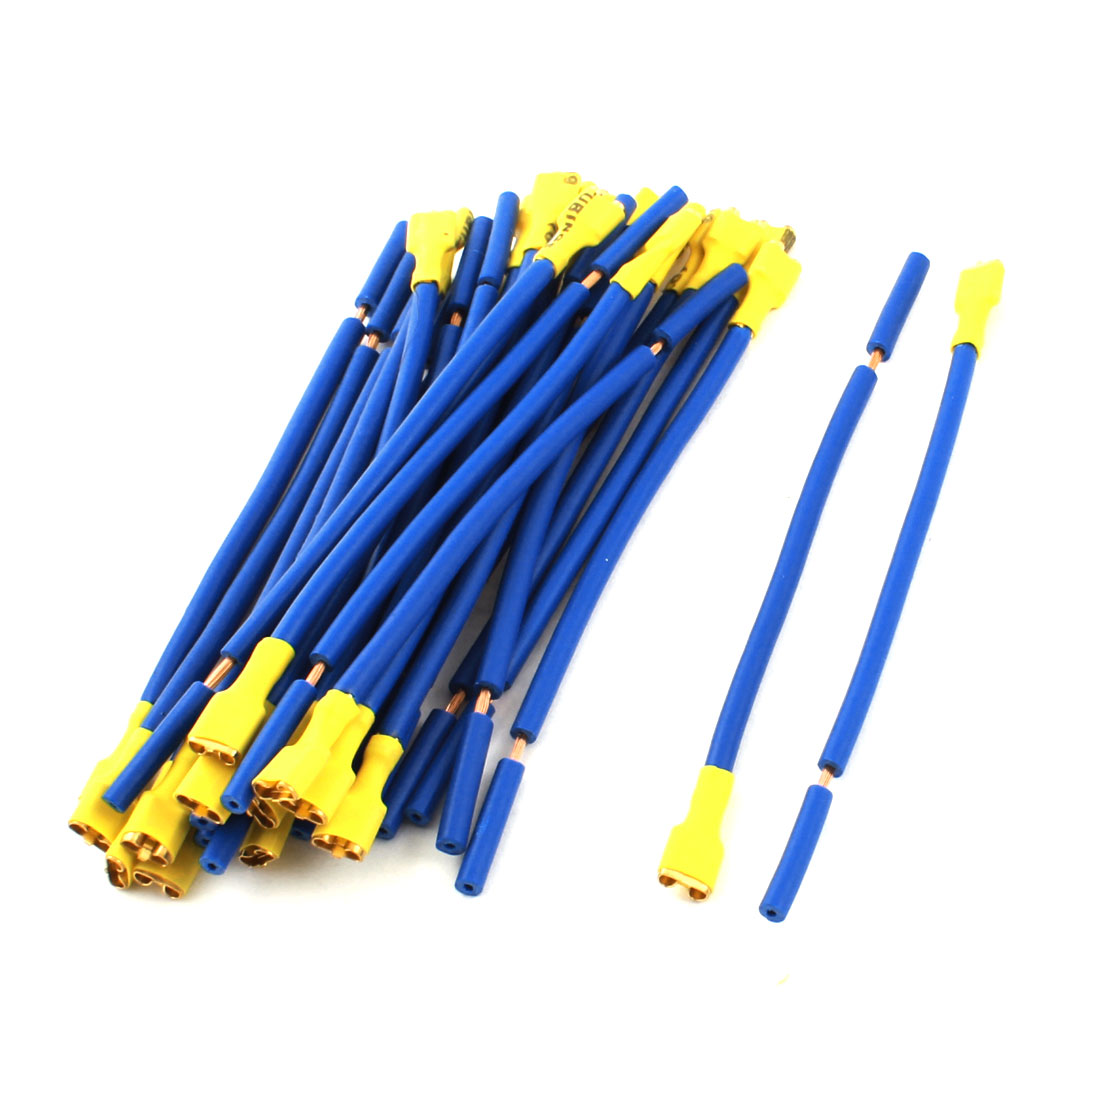 30Pcs Blue Yellow Female Terminal Plug Cable Wire Connector for Car Audio Speaker